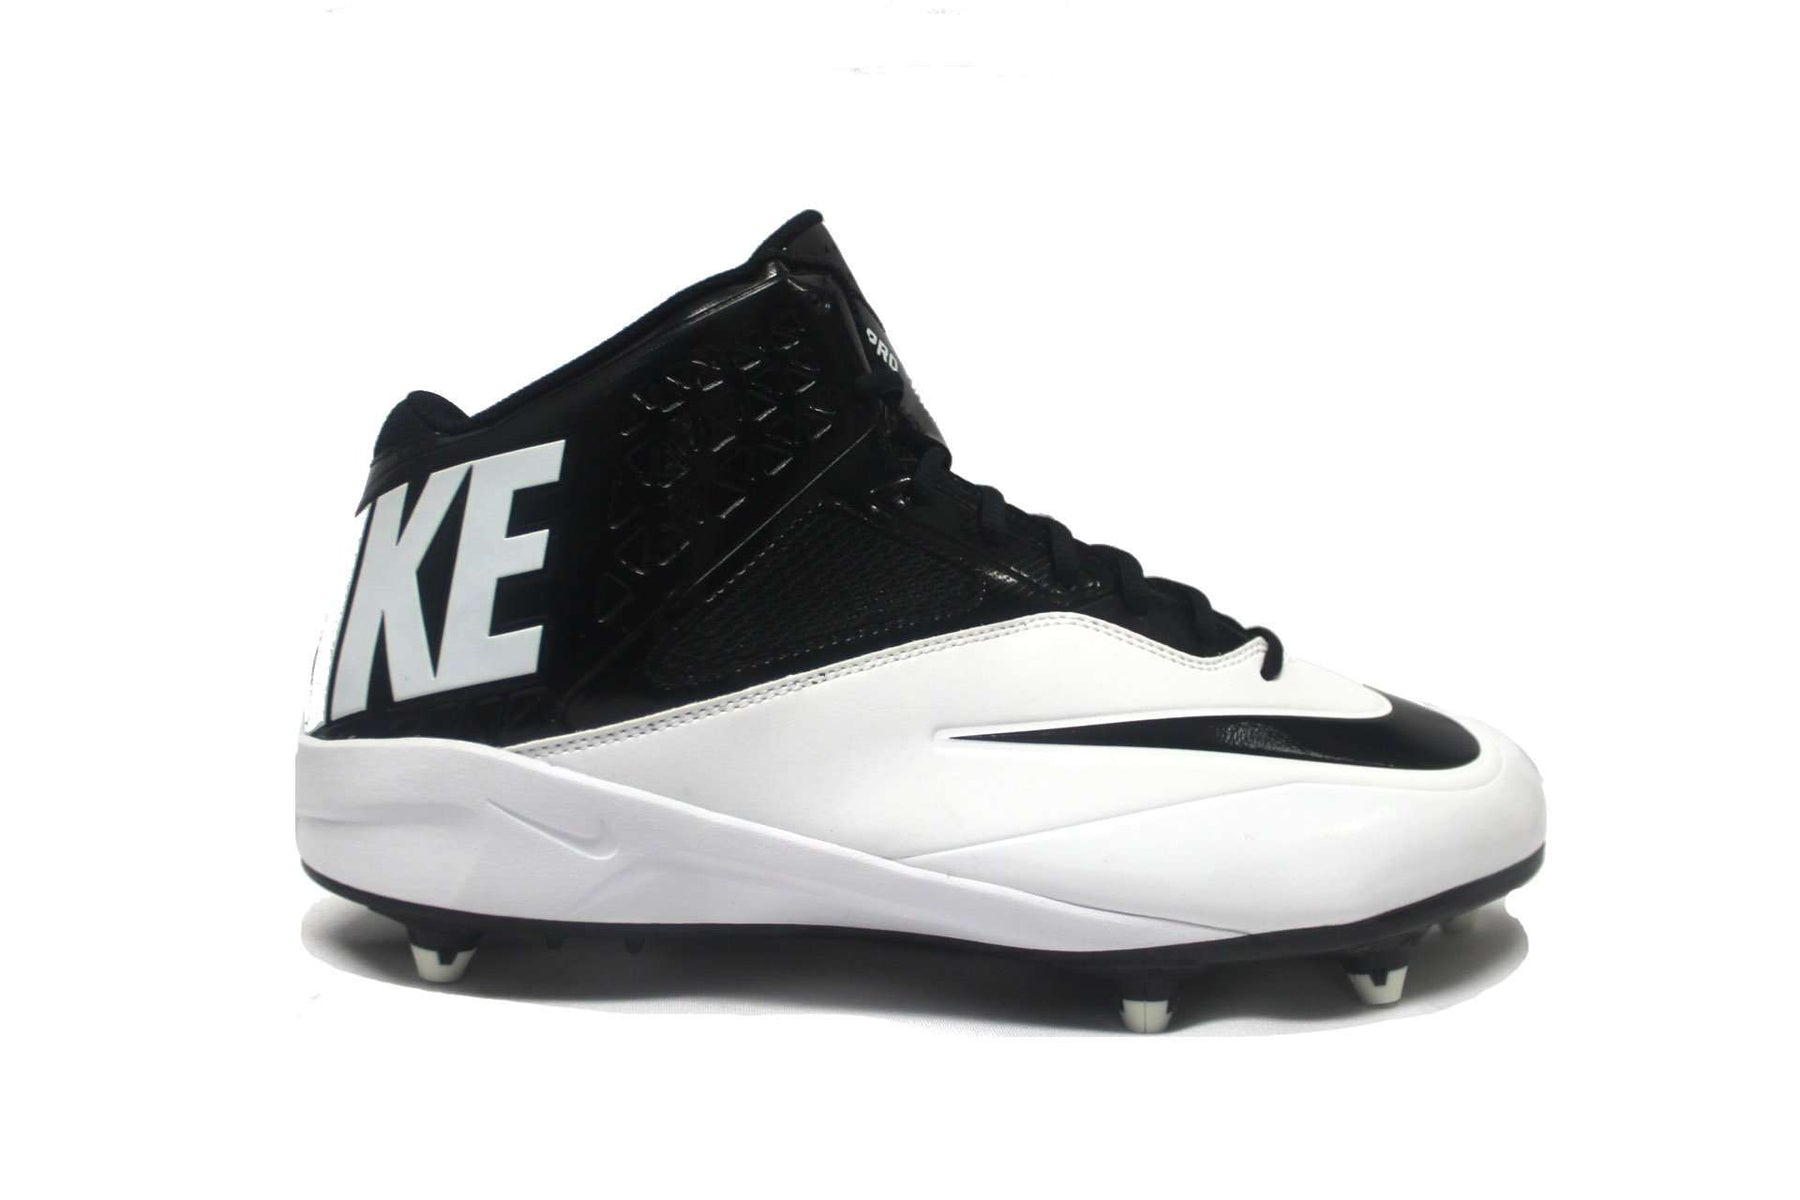 buy popular 74460 5fbb4 Nike Lunar Code Pro 3 4 Wide D Football Cleats - League Outfitters